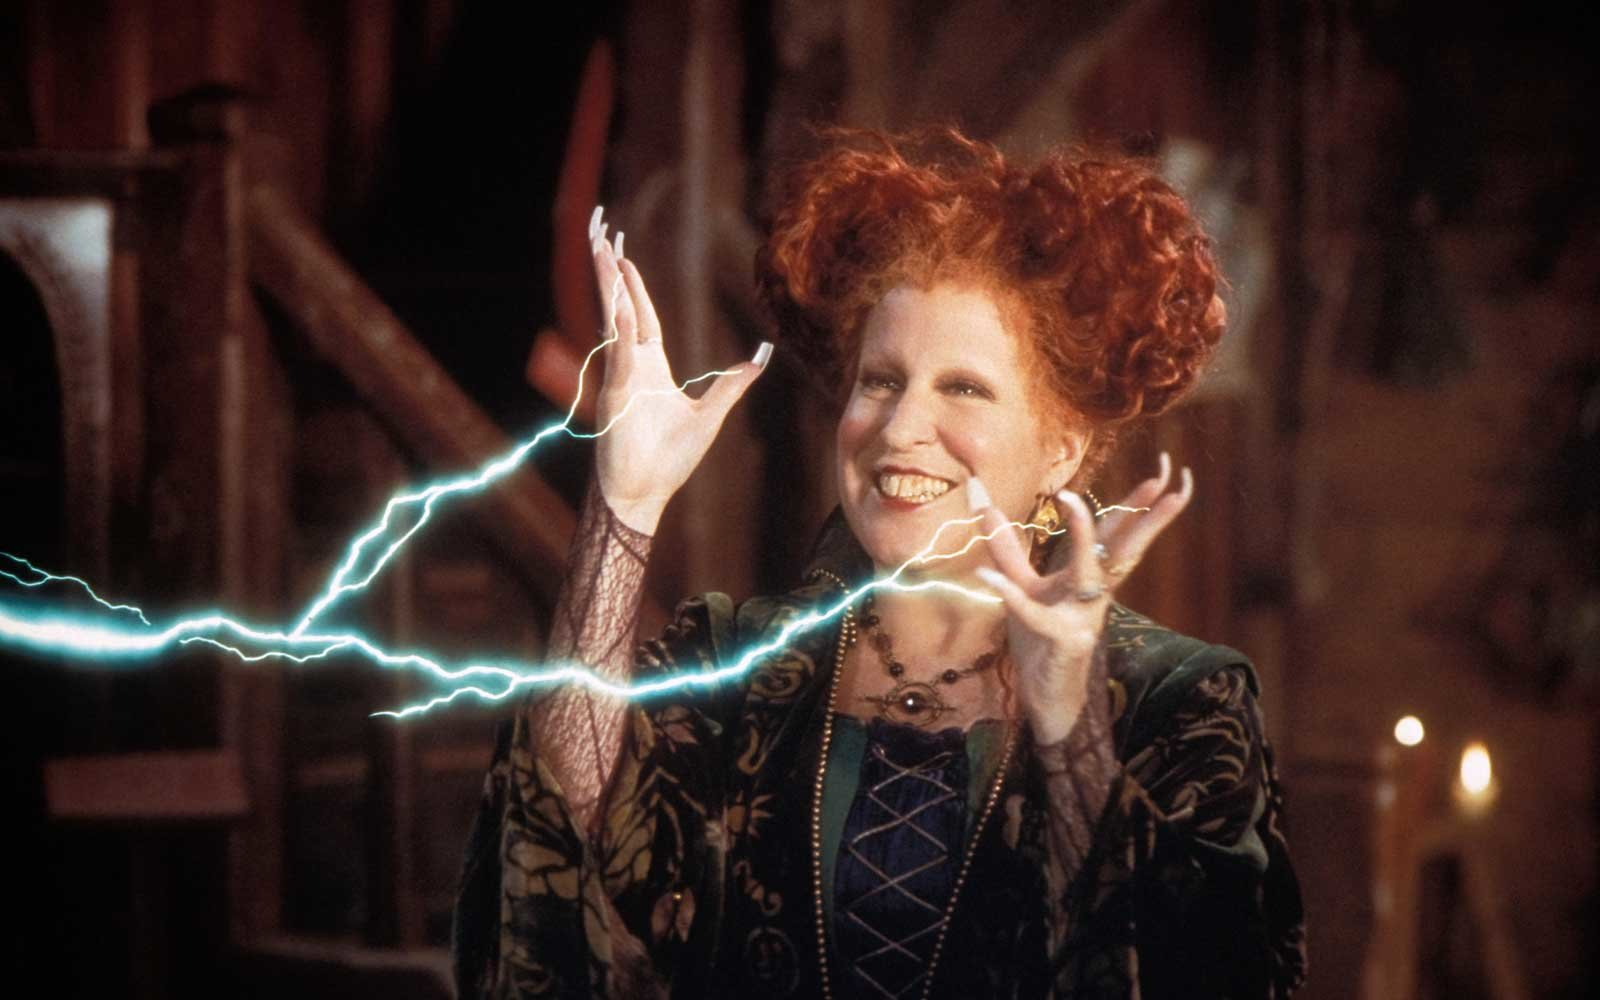 Film still / publicity still from Hocus Pocus Bette Midler © 1993 Walt Disney Pictures File Reference # 31371275THA For Editorial Use Only All Rights Reserved